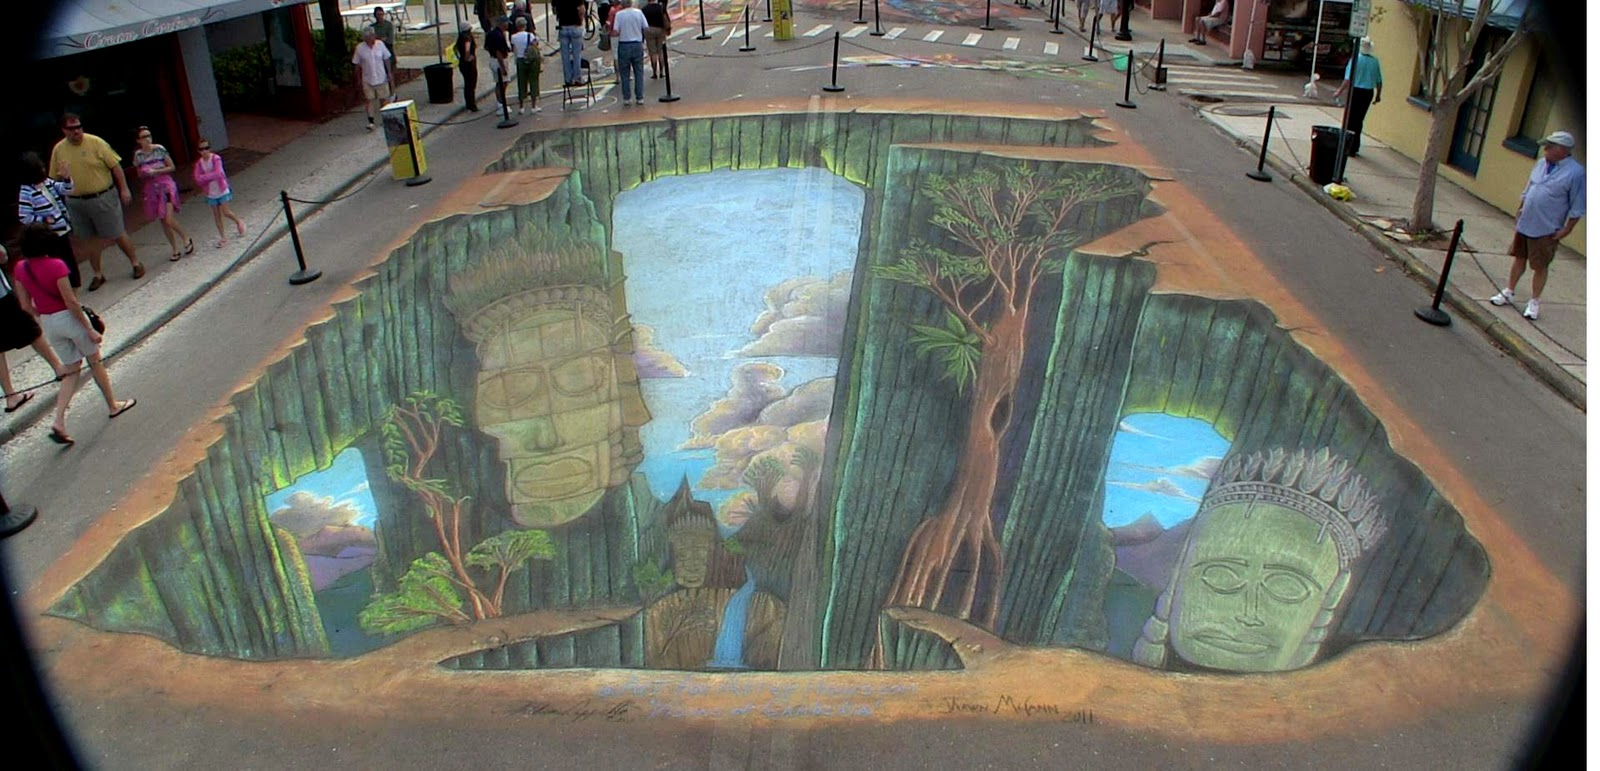 Shawn mccann street painting 3d wall murals regulare for Art mural painting